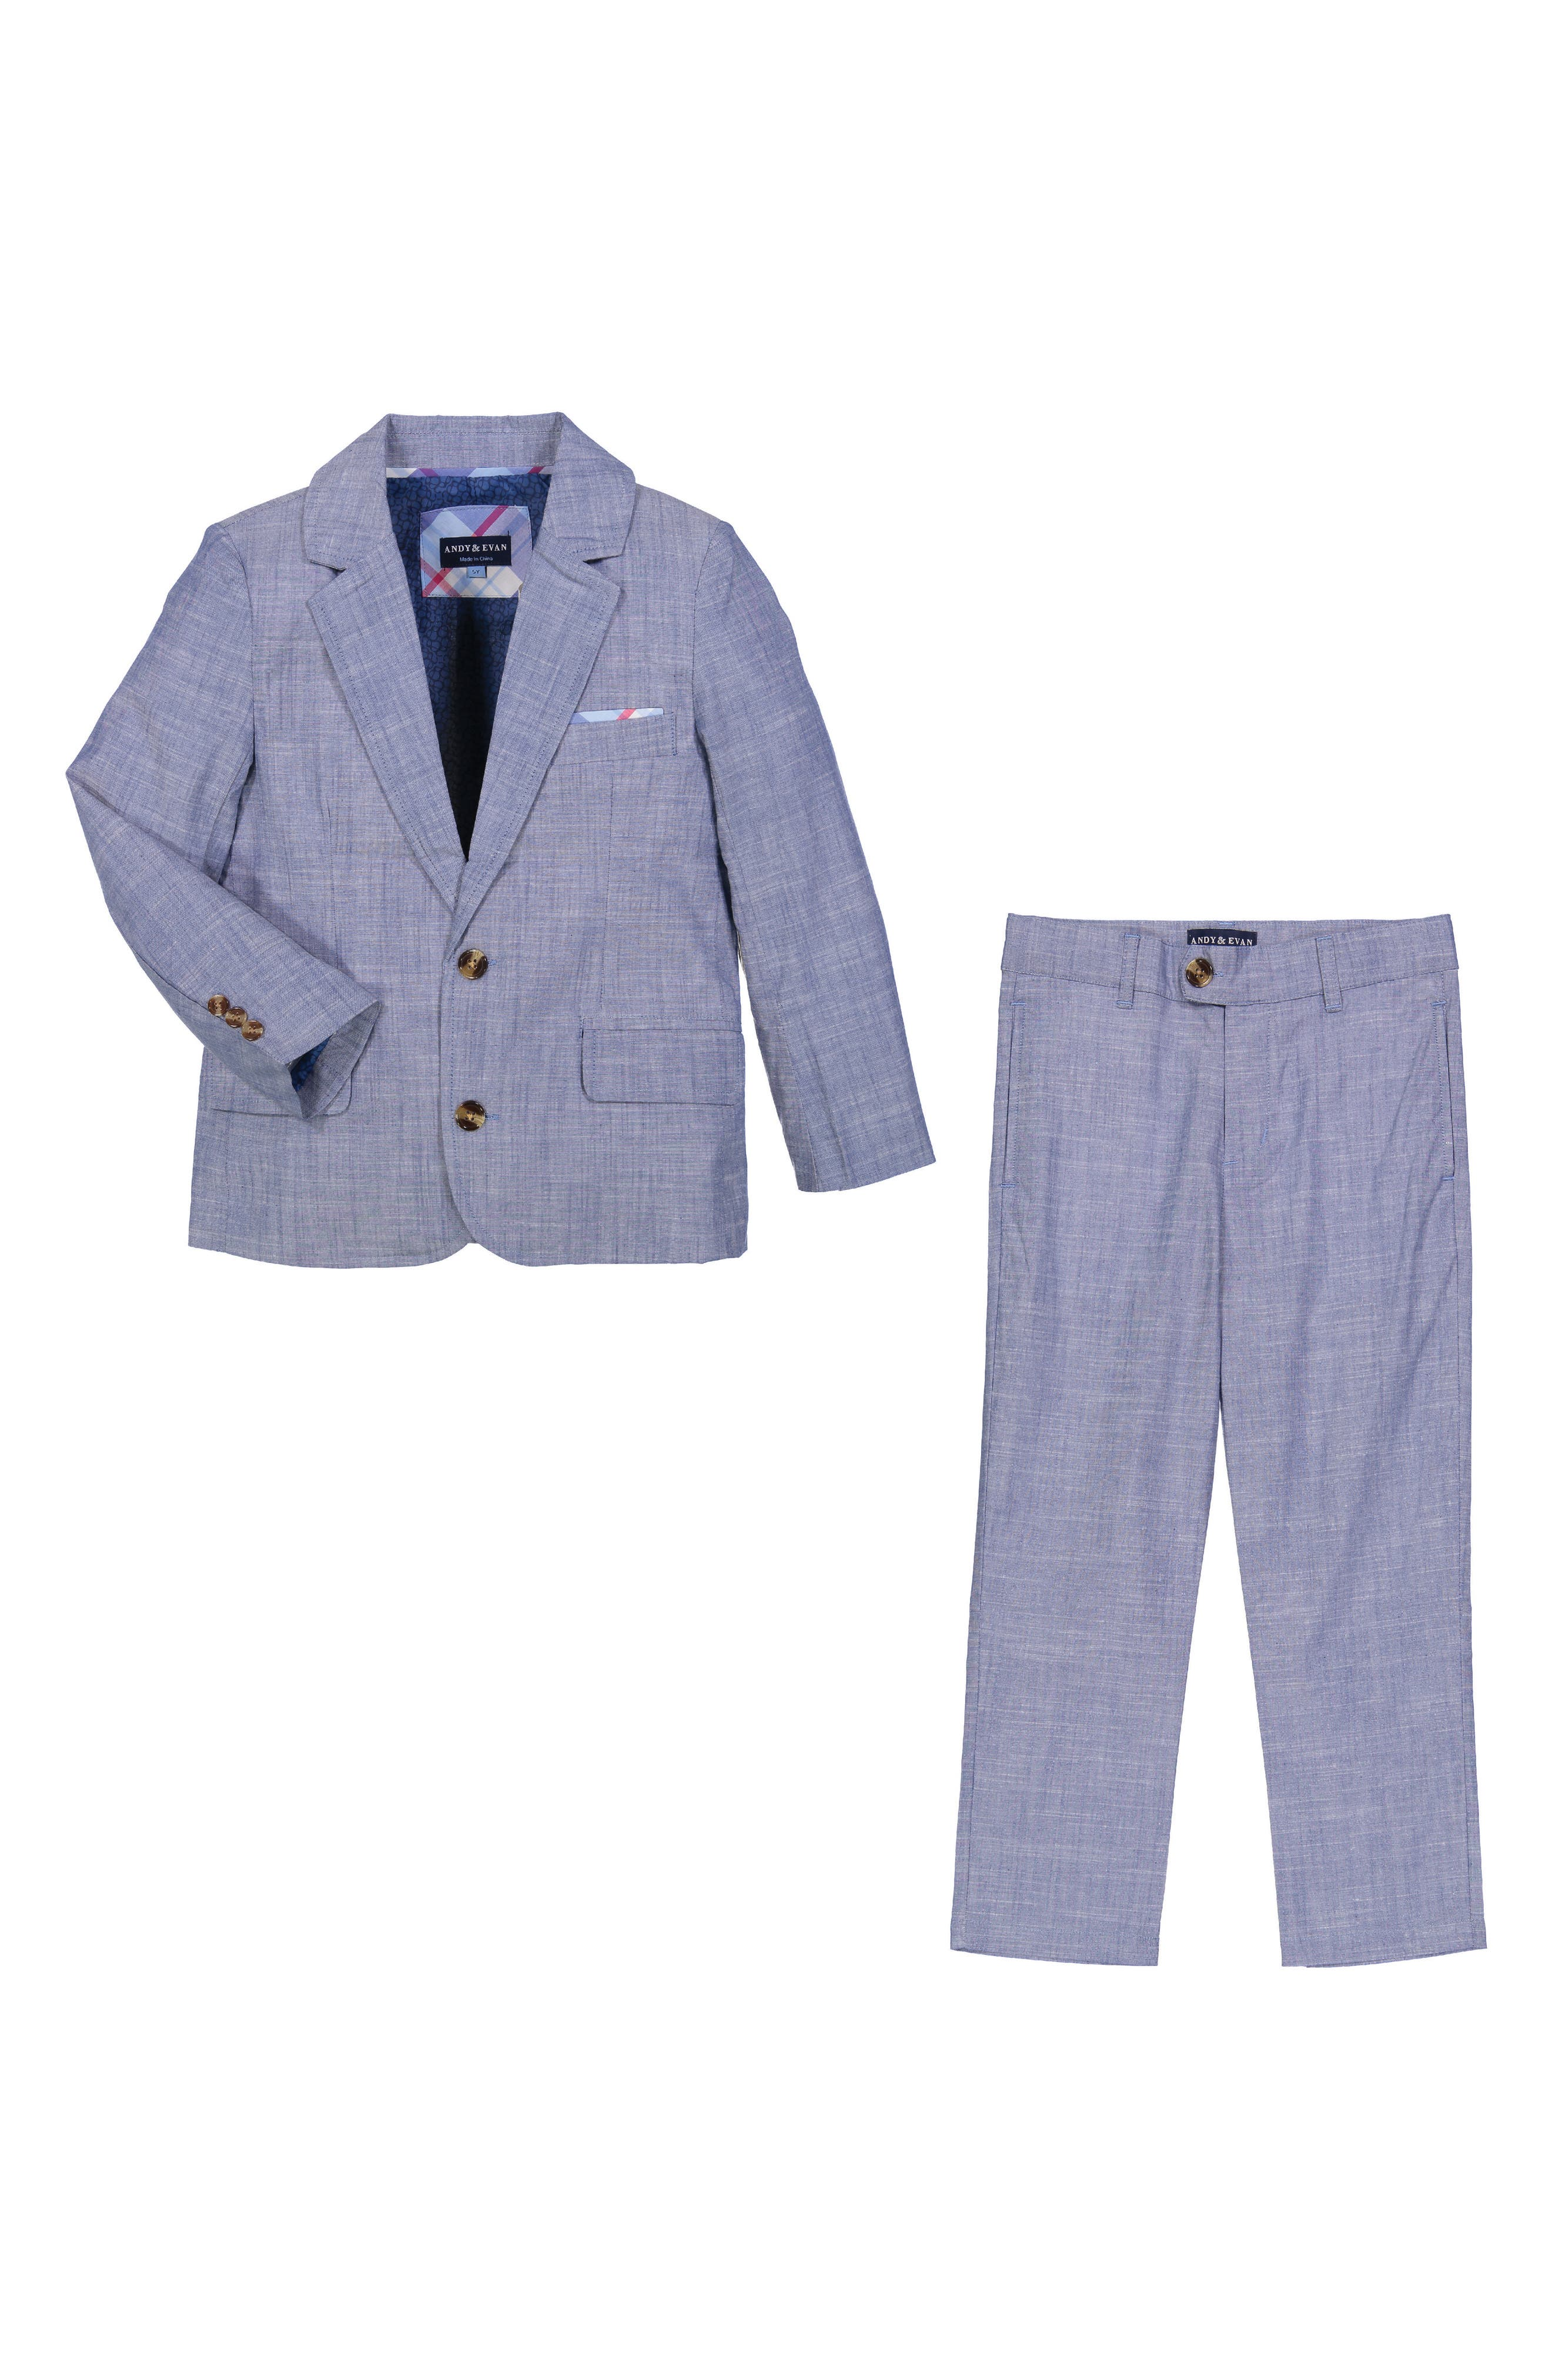 Main Image - Andy & Evan Chambray Suit Set (Baby Boys)